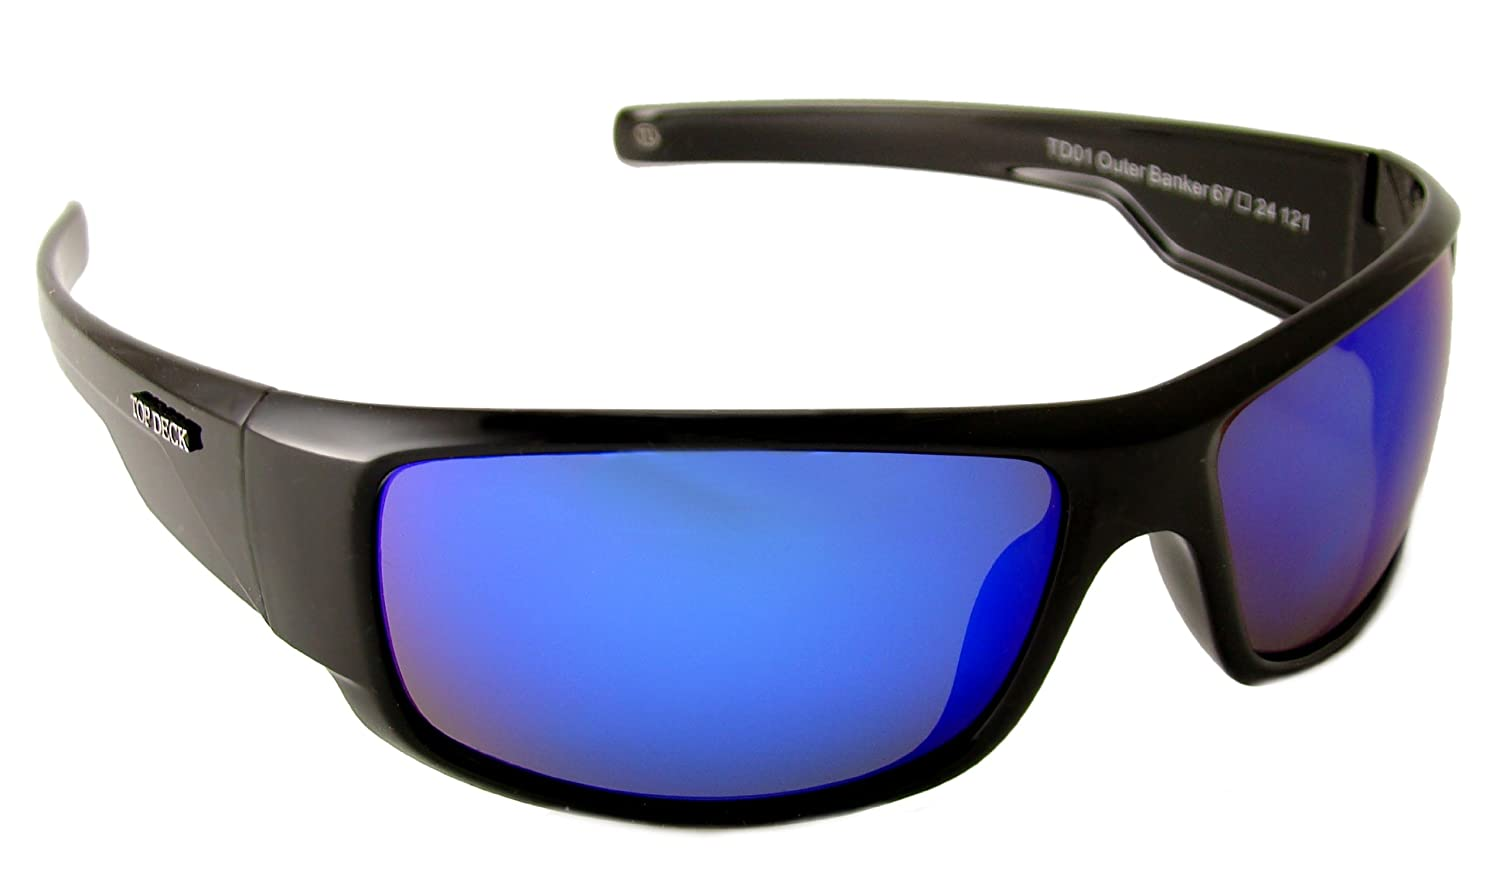 ba84afc62c2 Amazon.com  Top Deck Outer Banker Polarized Sunglasses